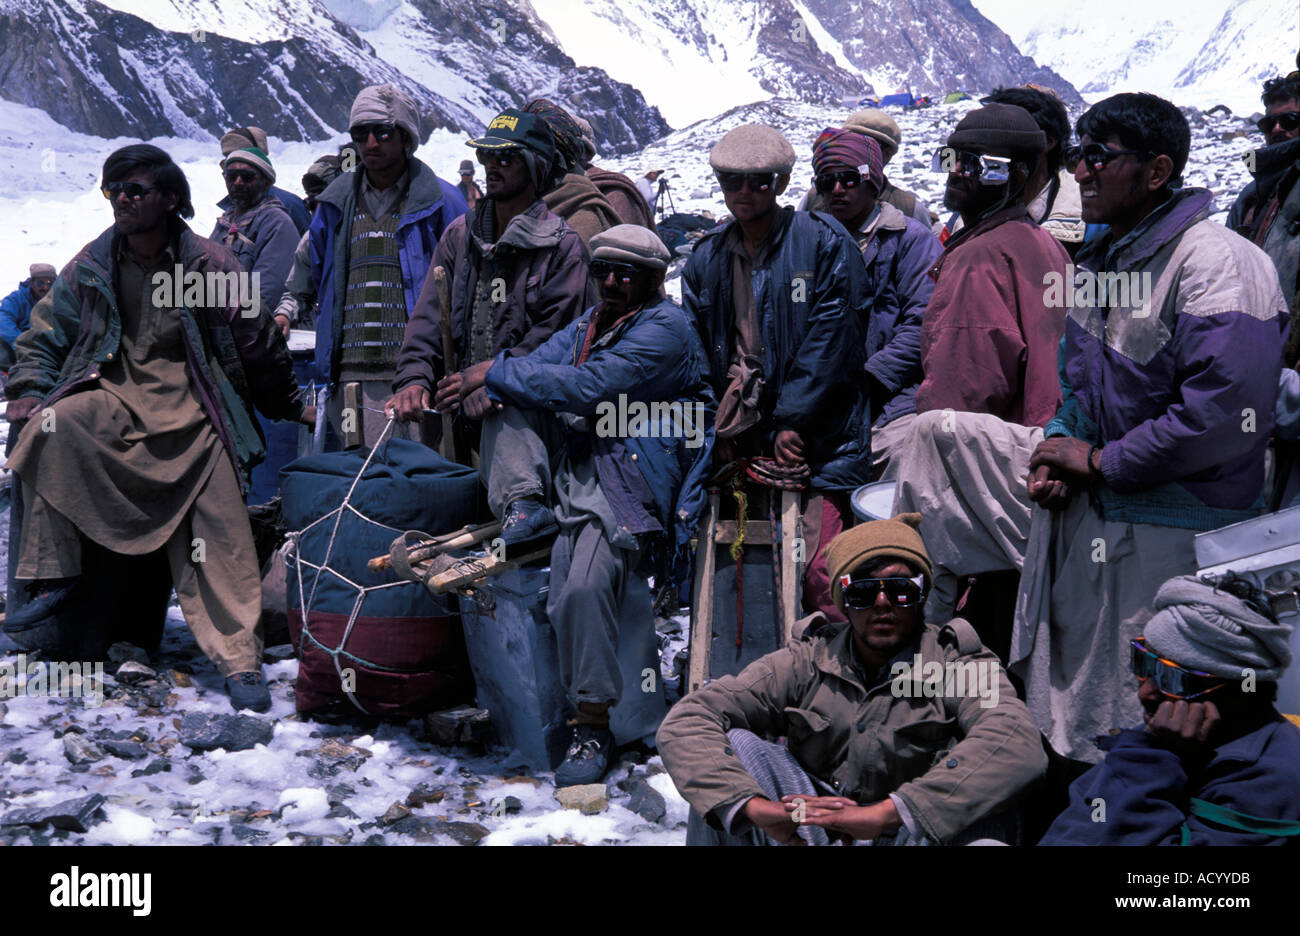 Balti porters at base camp K2 Pakistan - Stock Image